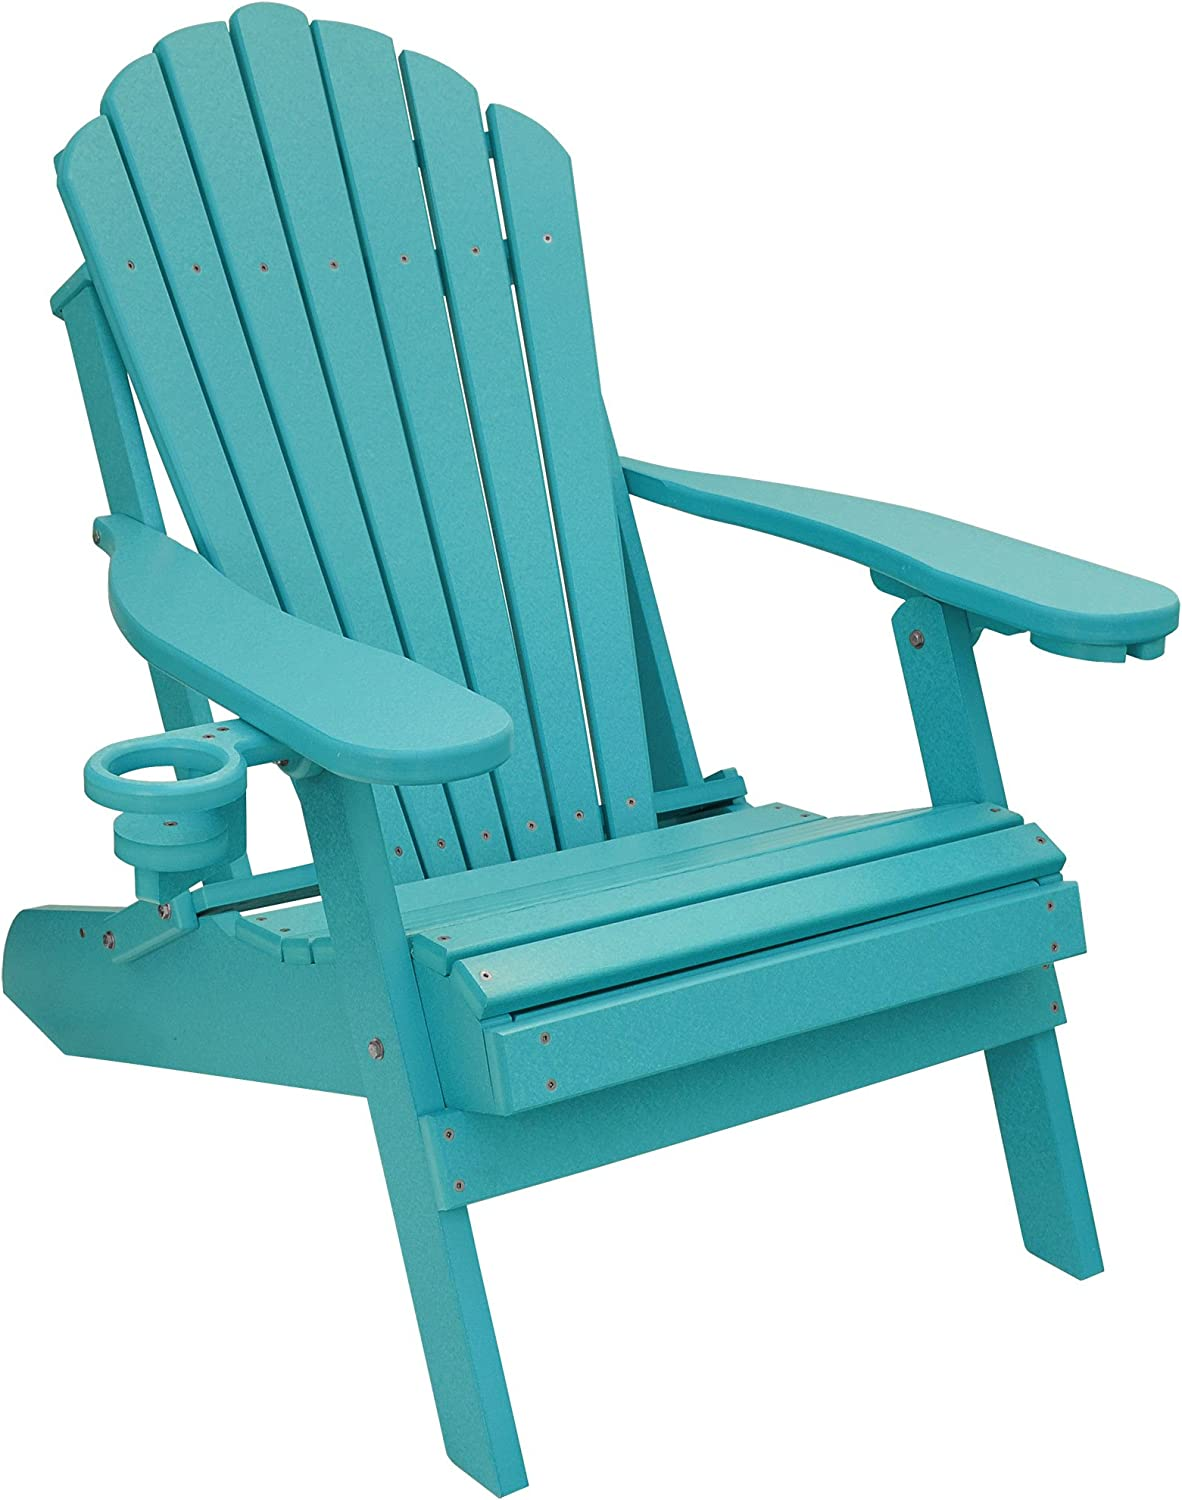 ECCB Outdoor Outer Banks Deluxe Oversized Poly Lumber Folding Adirondack Chair Aruba Blue